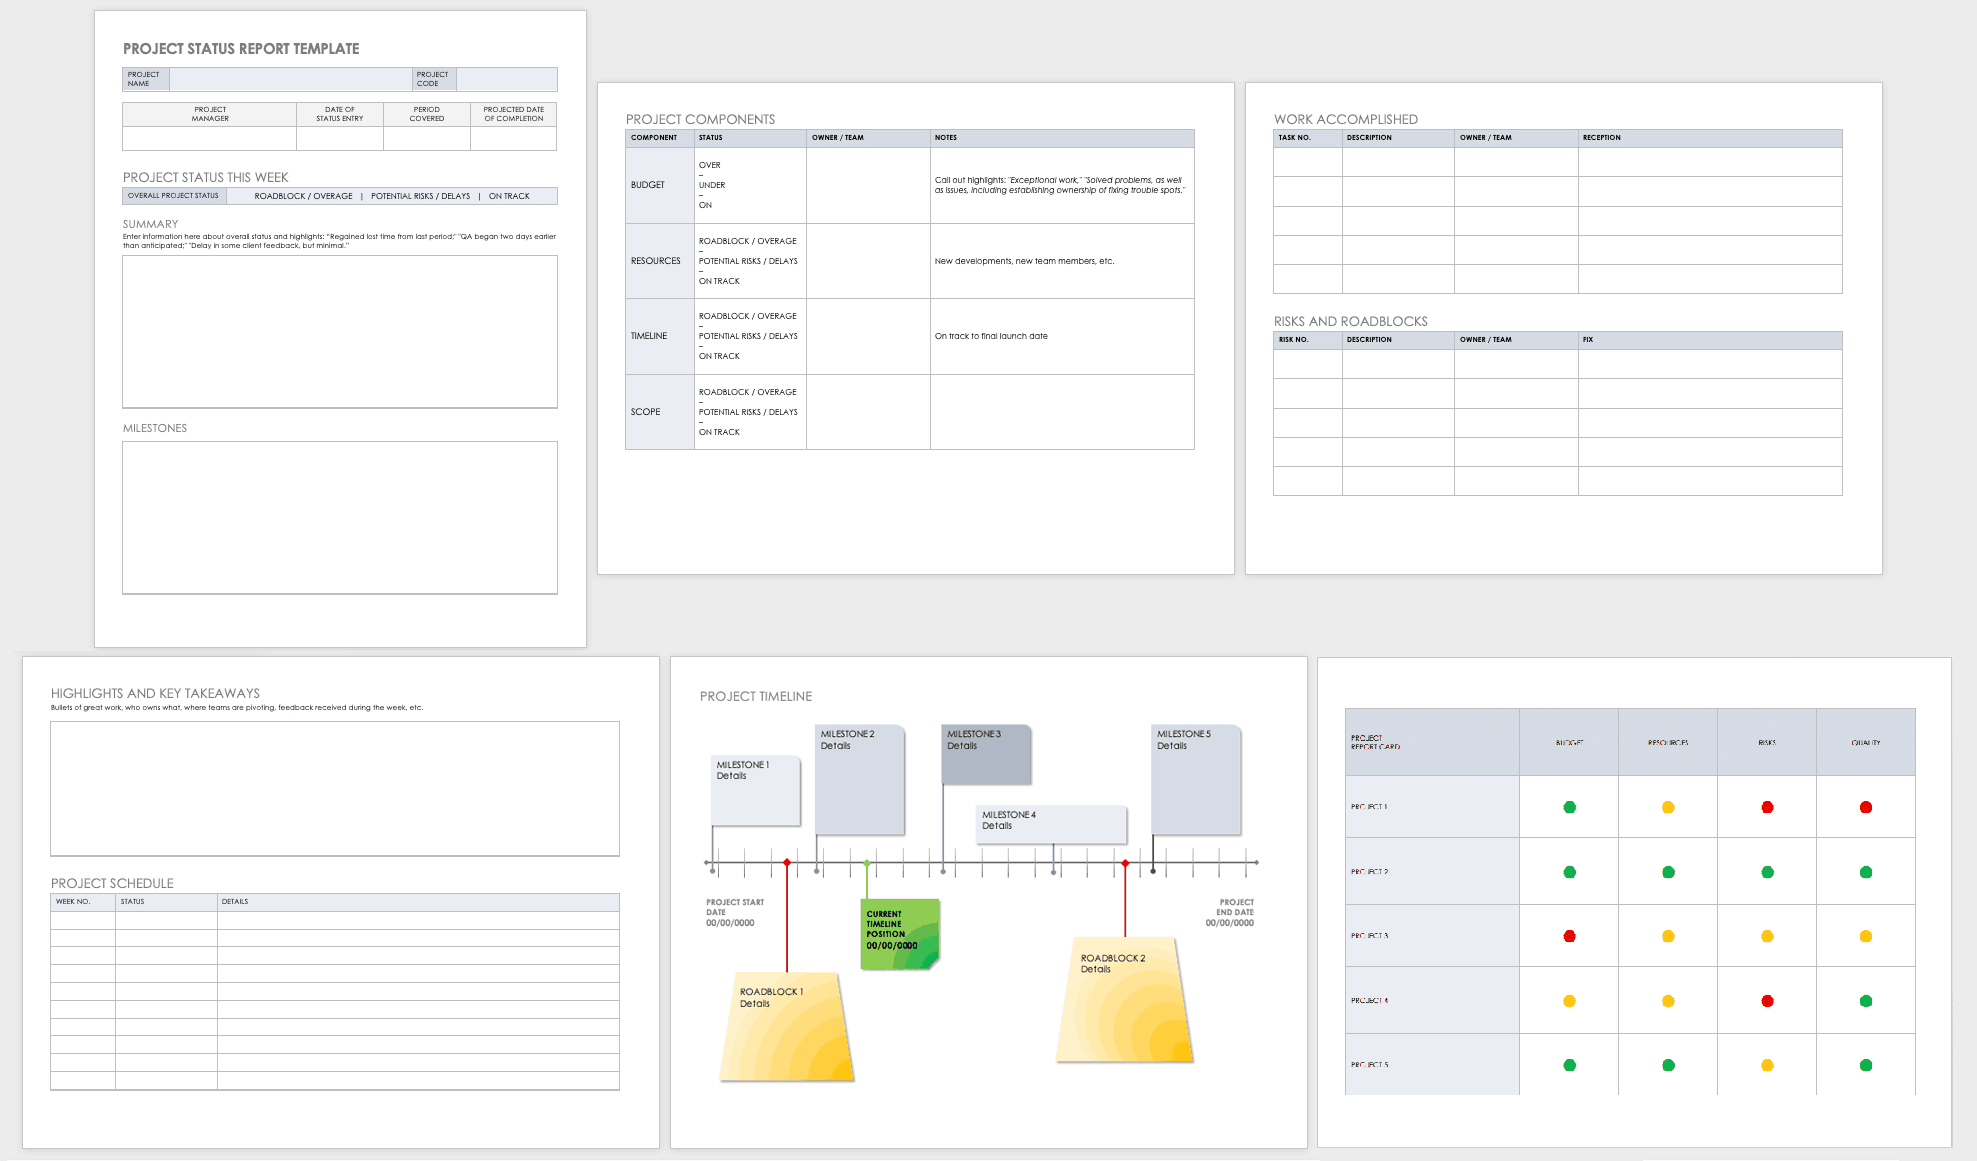 Free Project Report Templates | Smartsheet inside Report To Senior Management Template